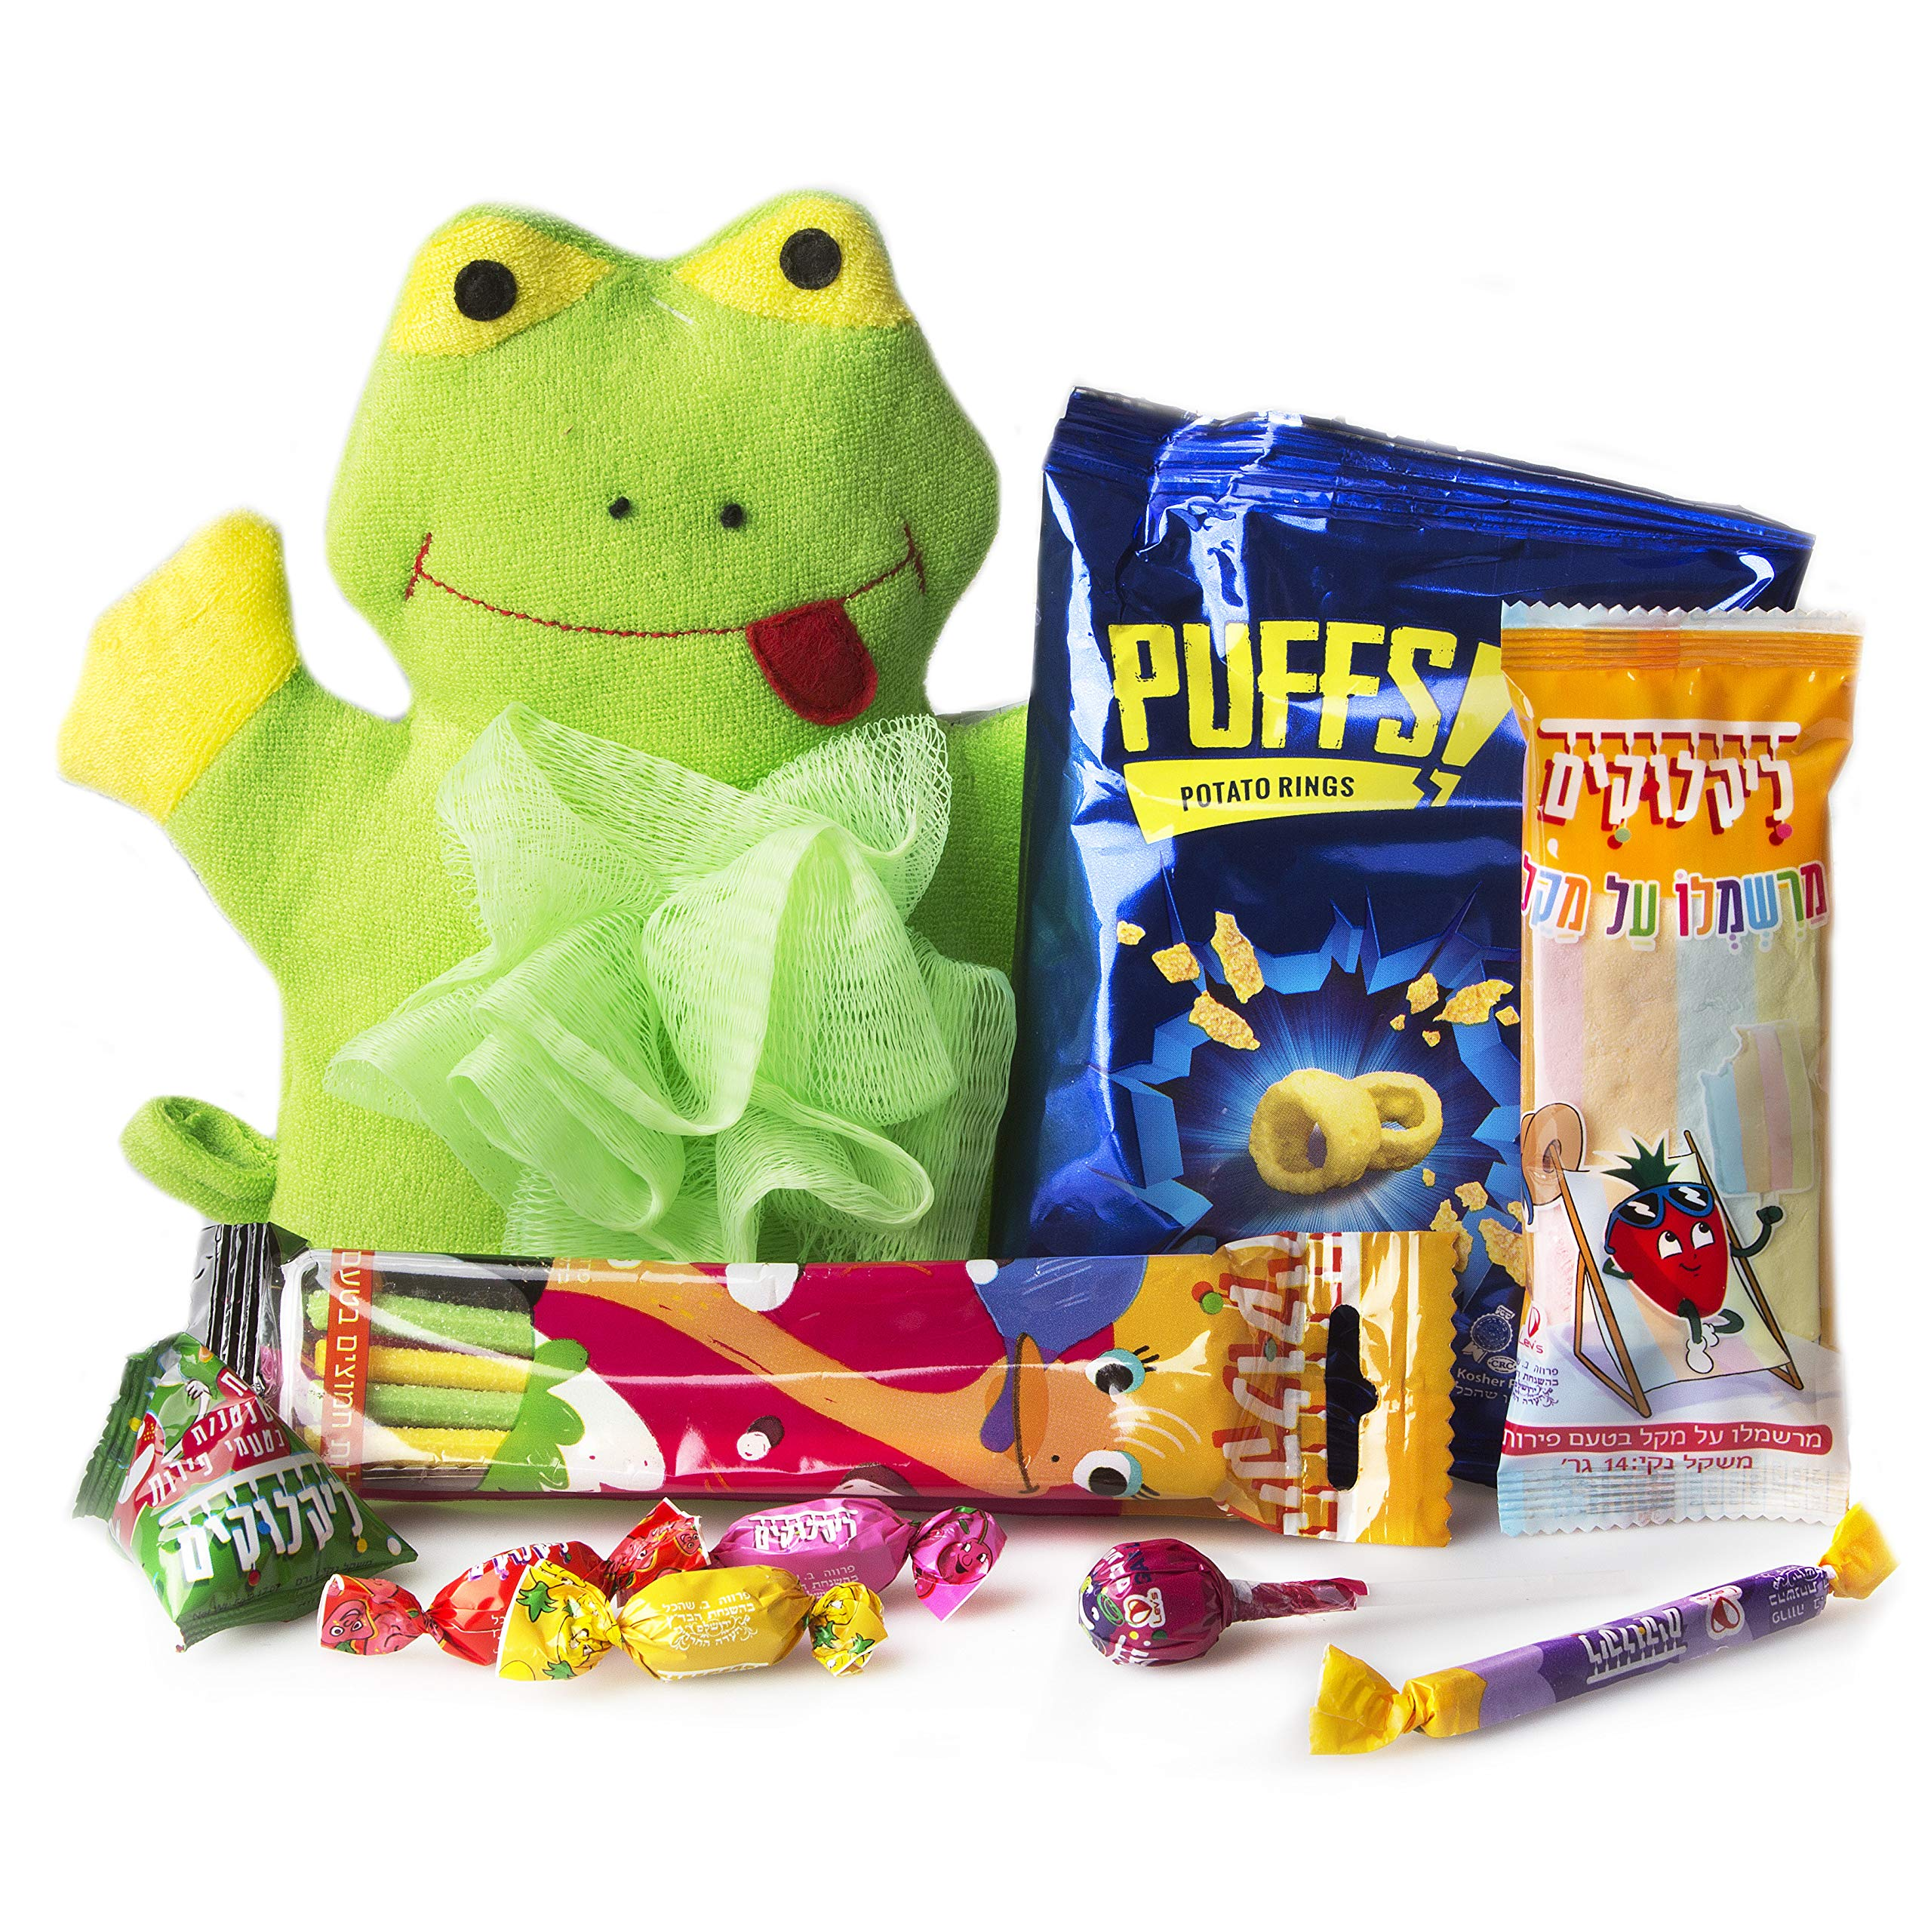 Kosher Camp Packages and Gifts - Kosher Snack and Kosher Candy - Oh! Nuts (Frog Bath Scrubber)